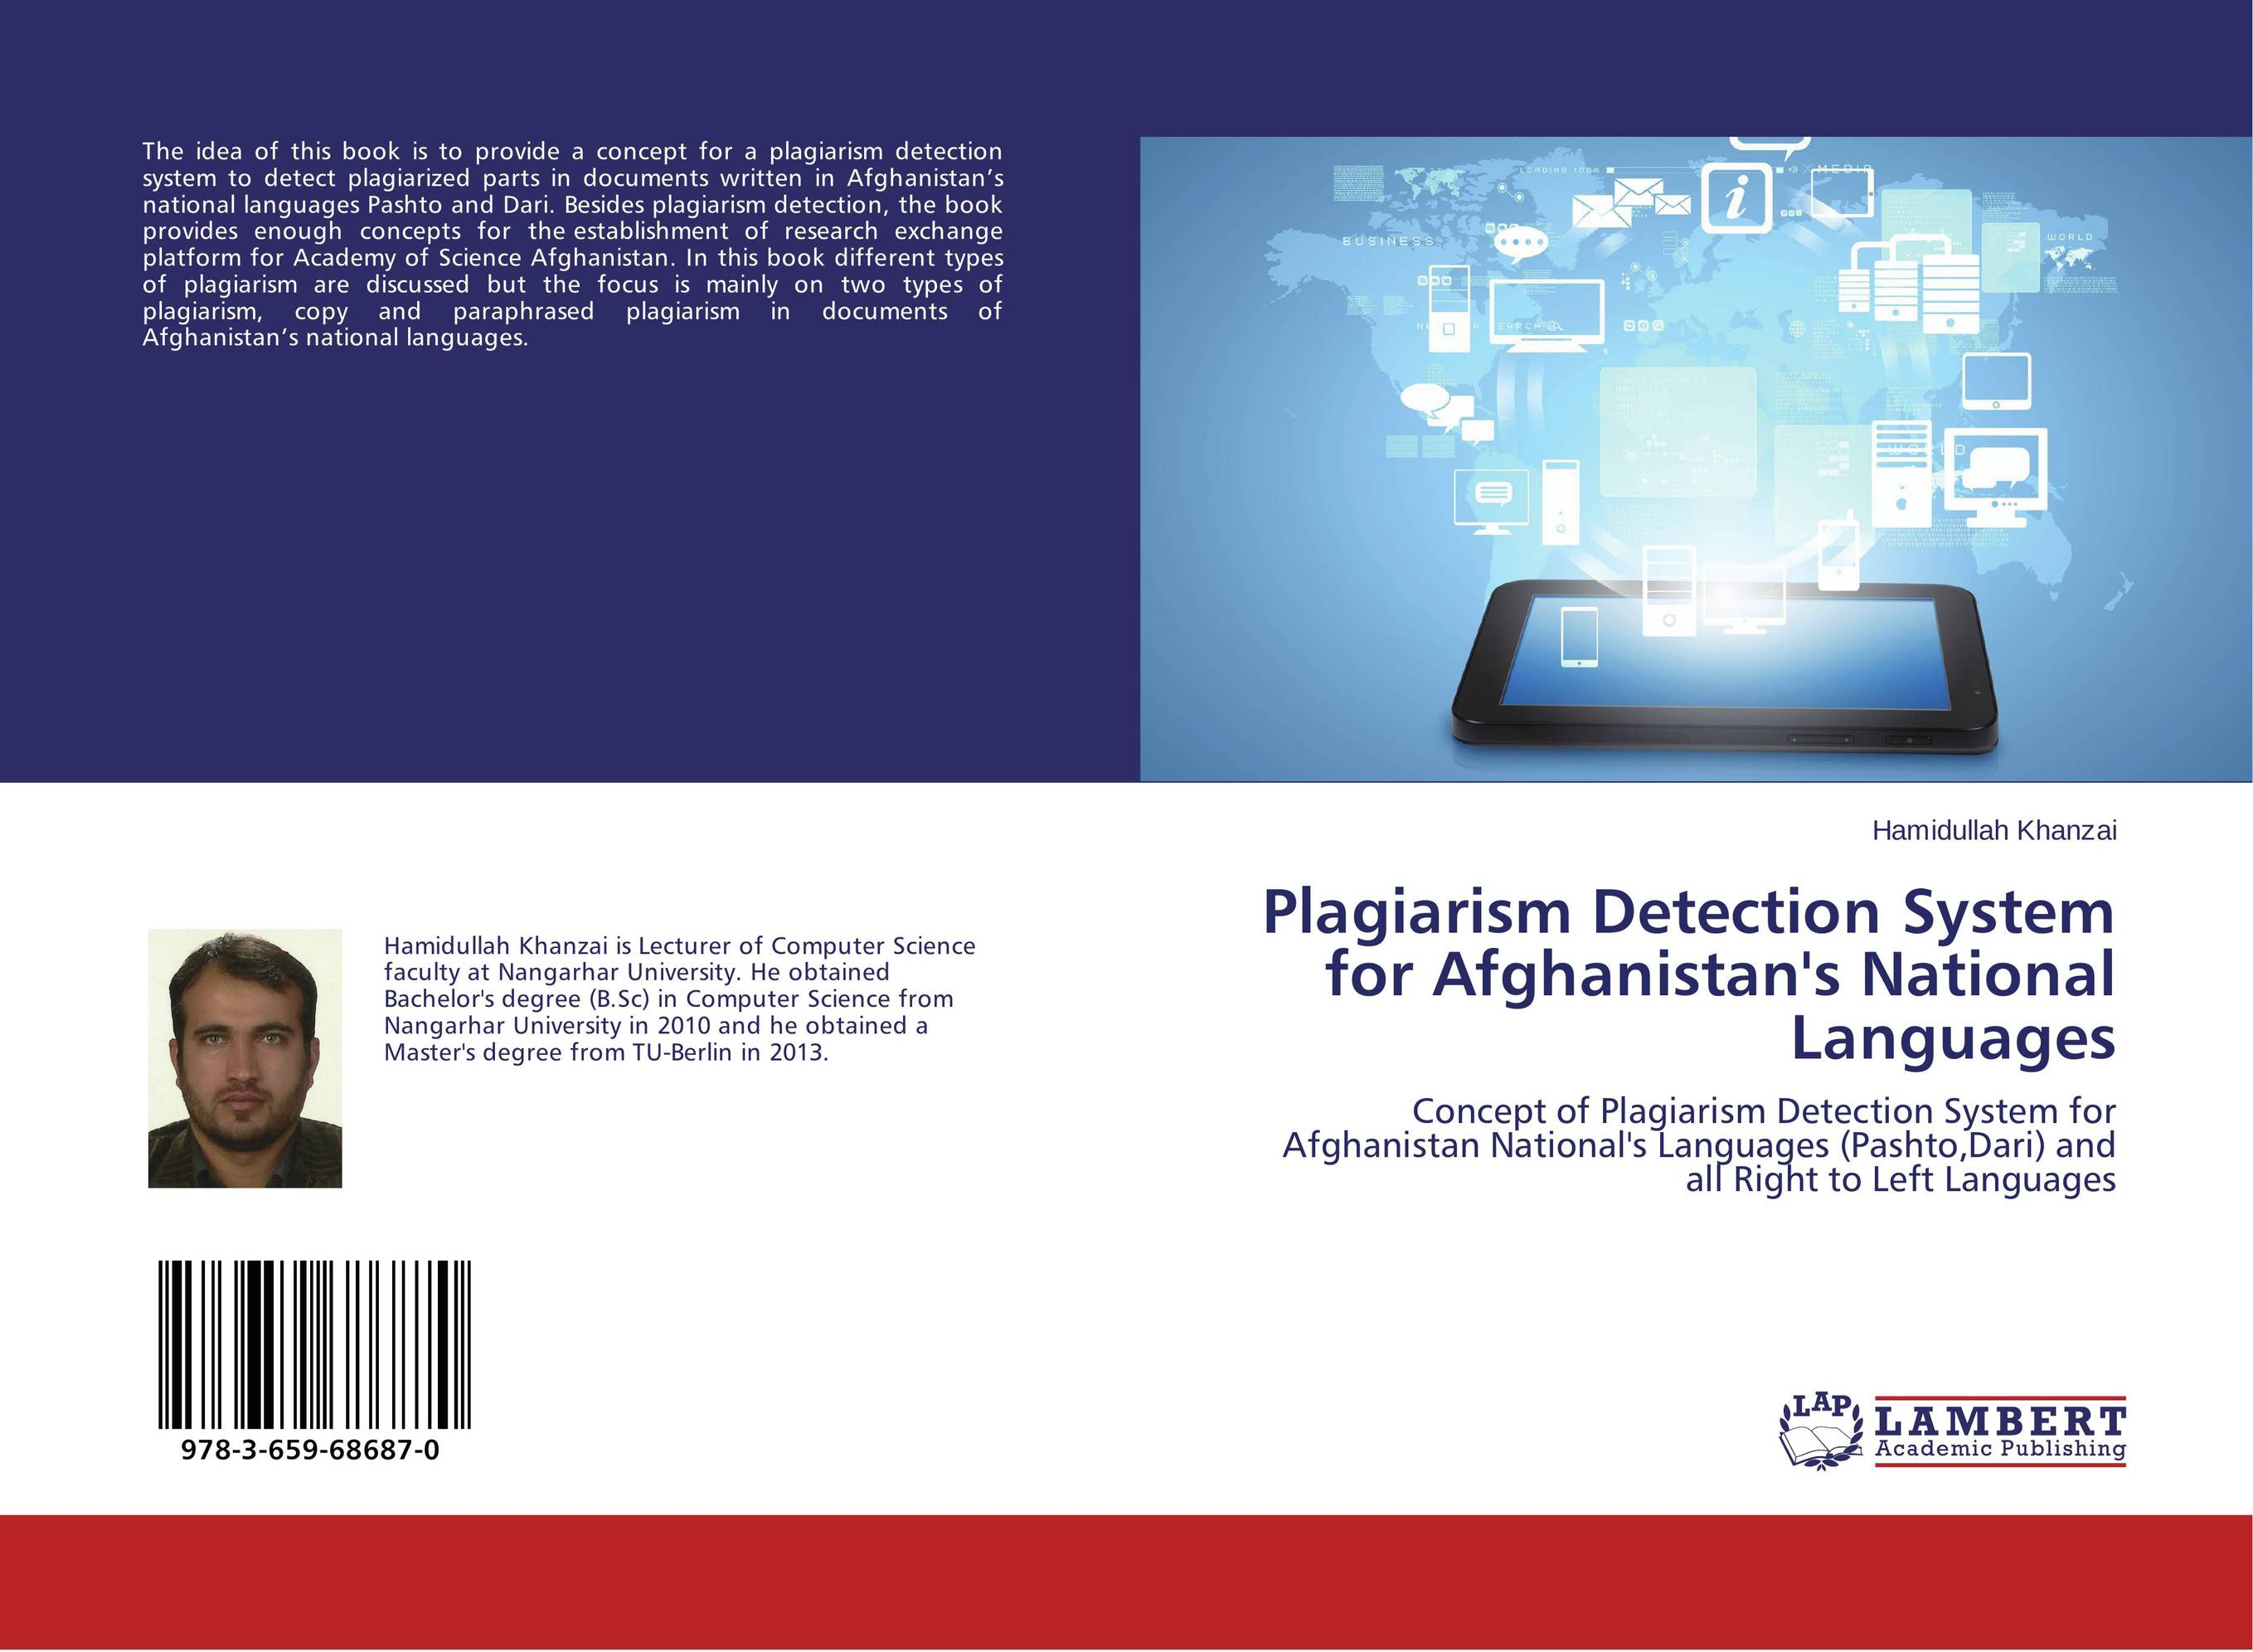 Plagiarism Detection System for Afghanistan's National Languages